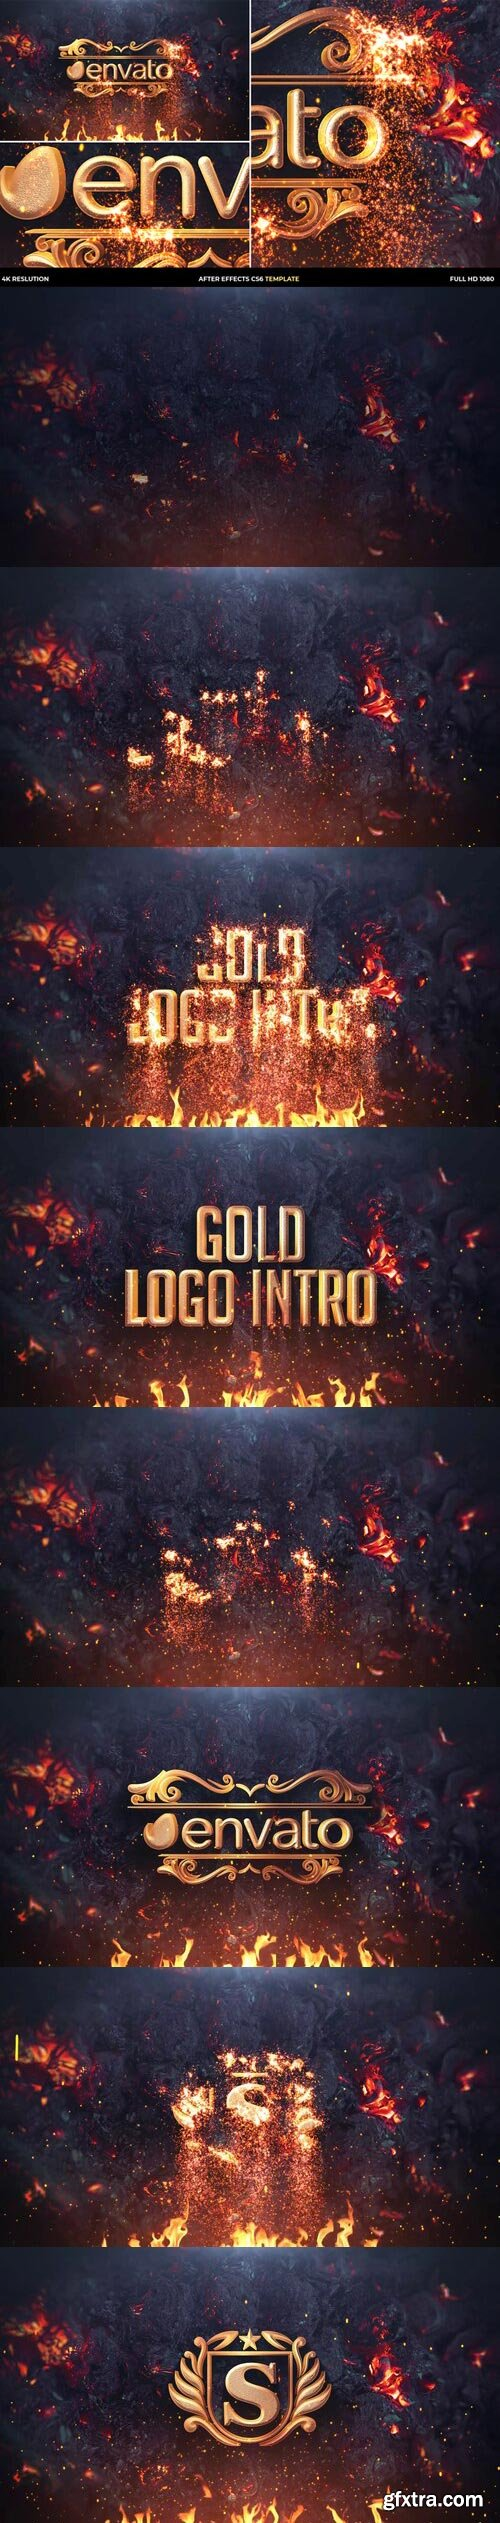 Videohive - Gold Particles Logo Intro - 30270705